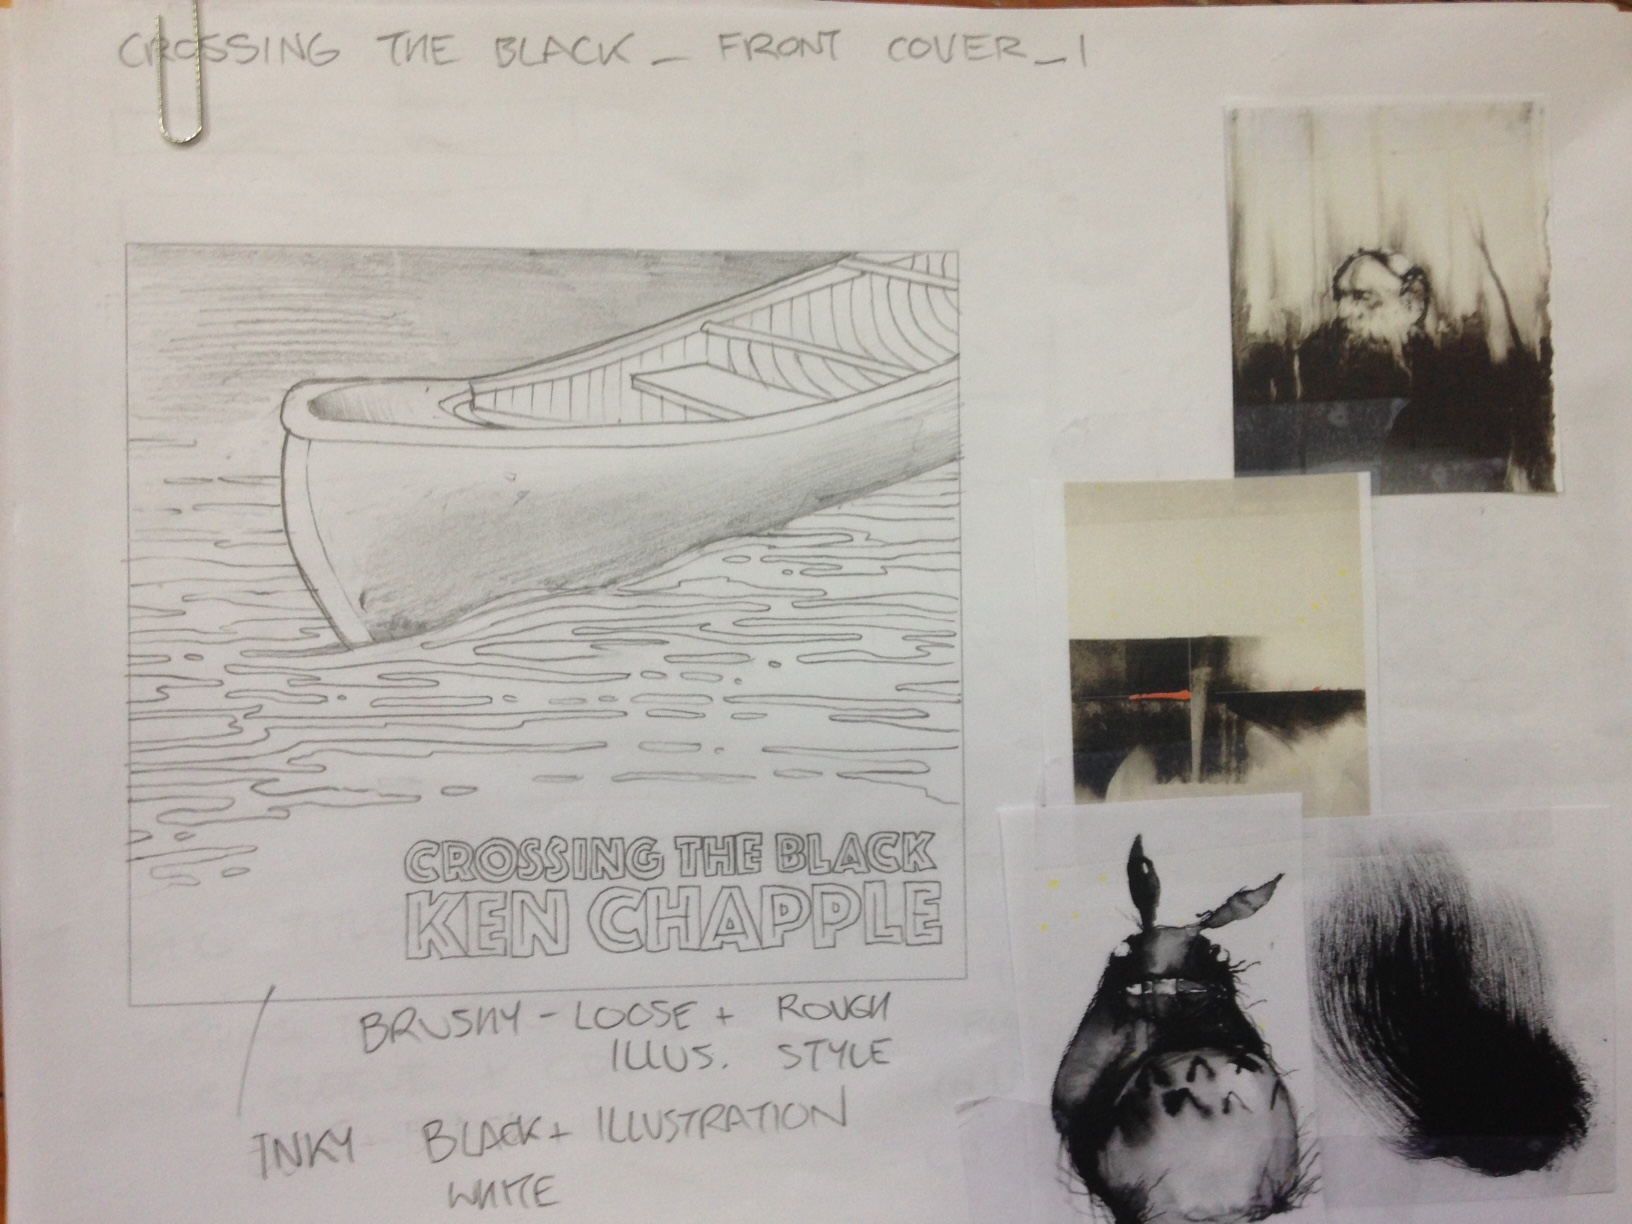 Crossing The Black Album Artwork Sketches